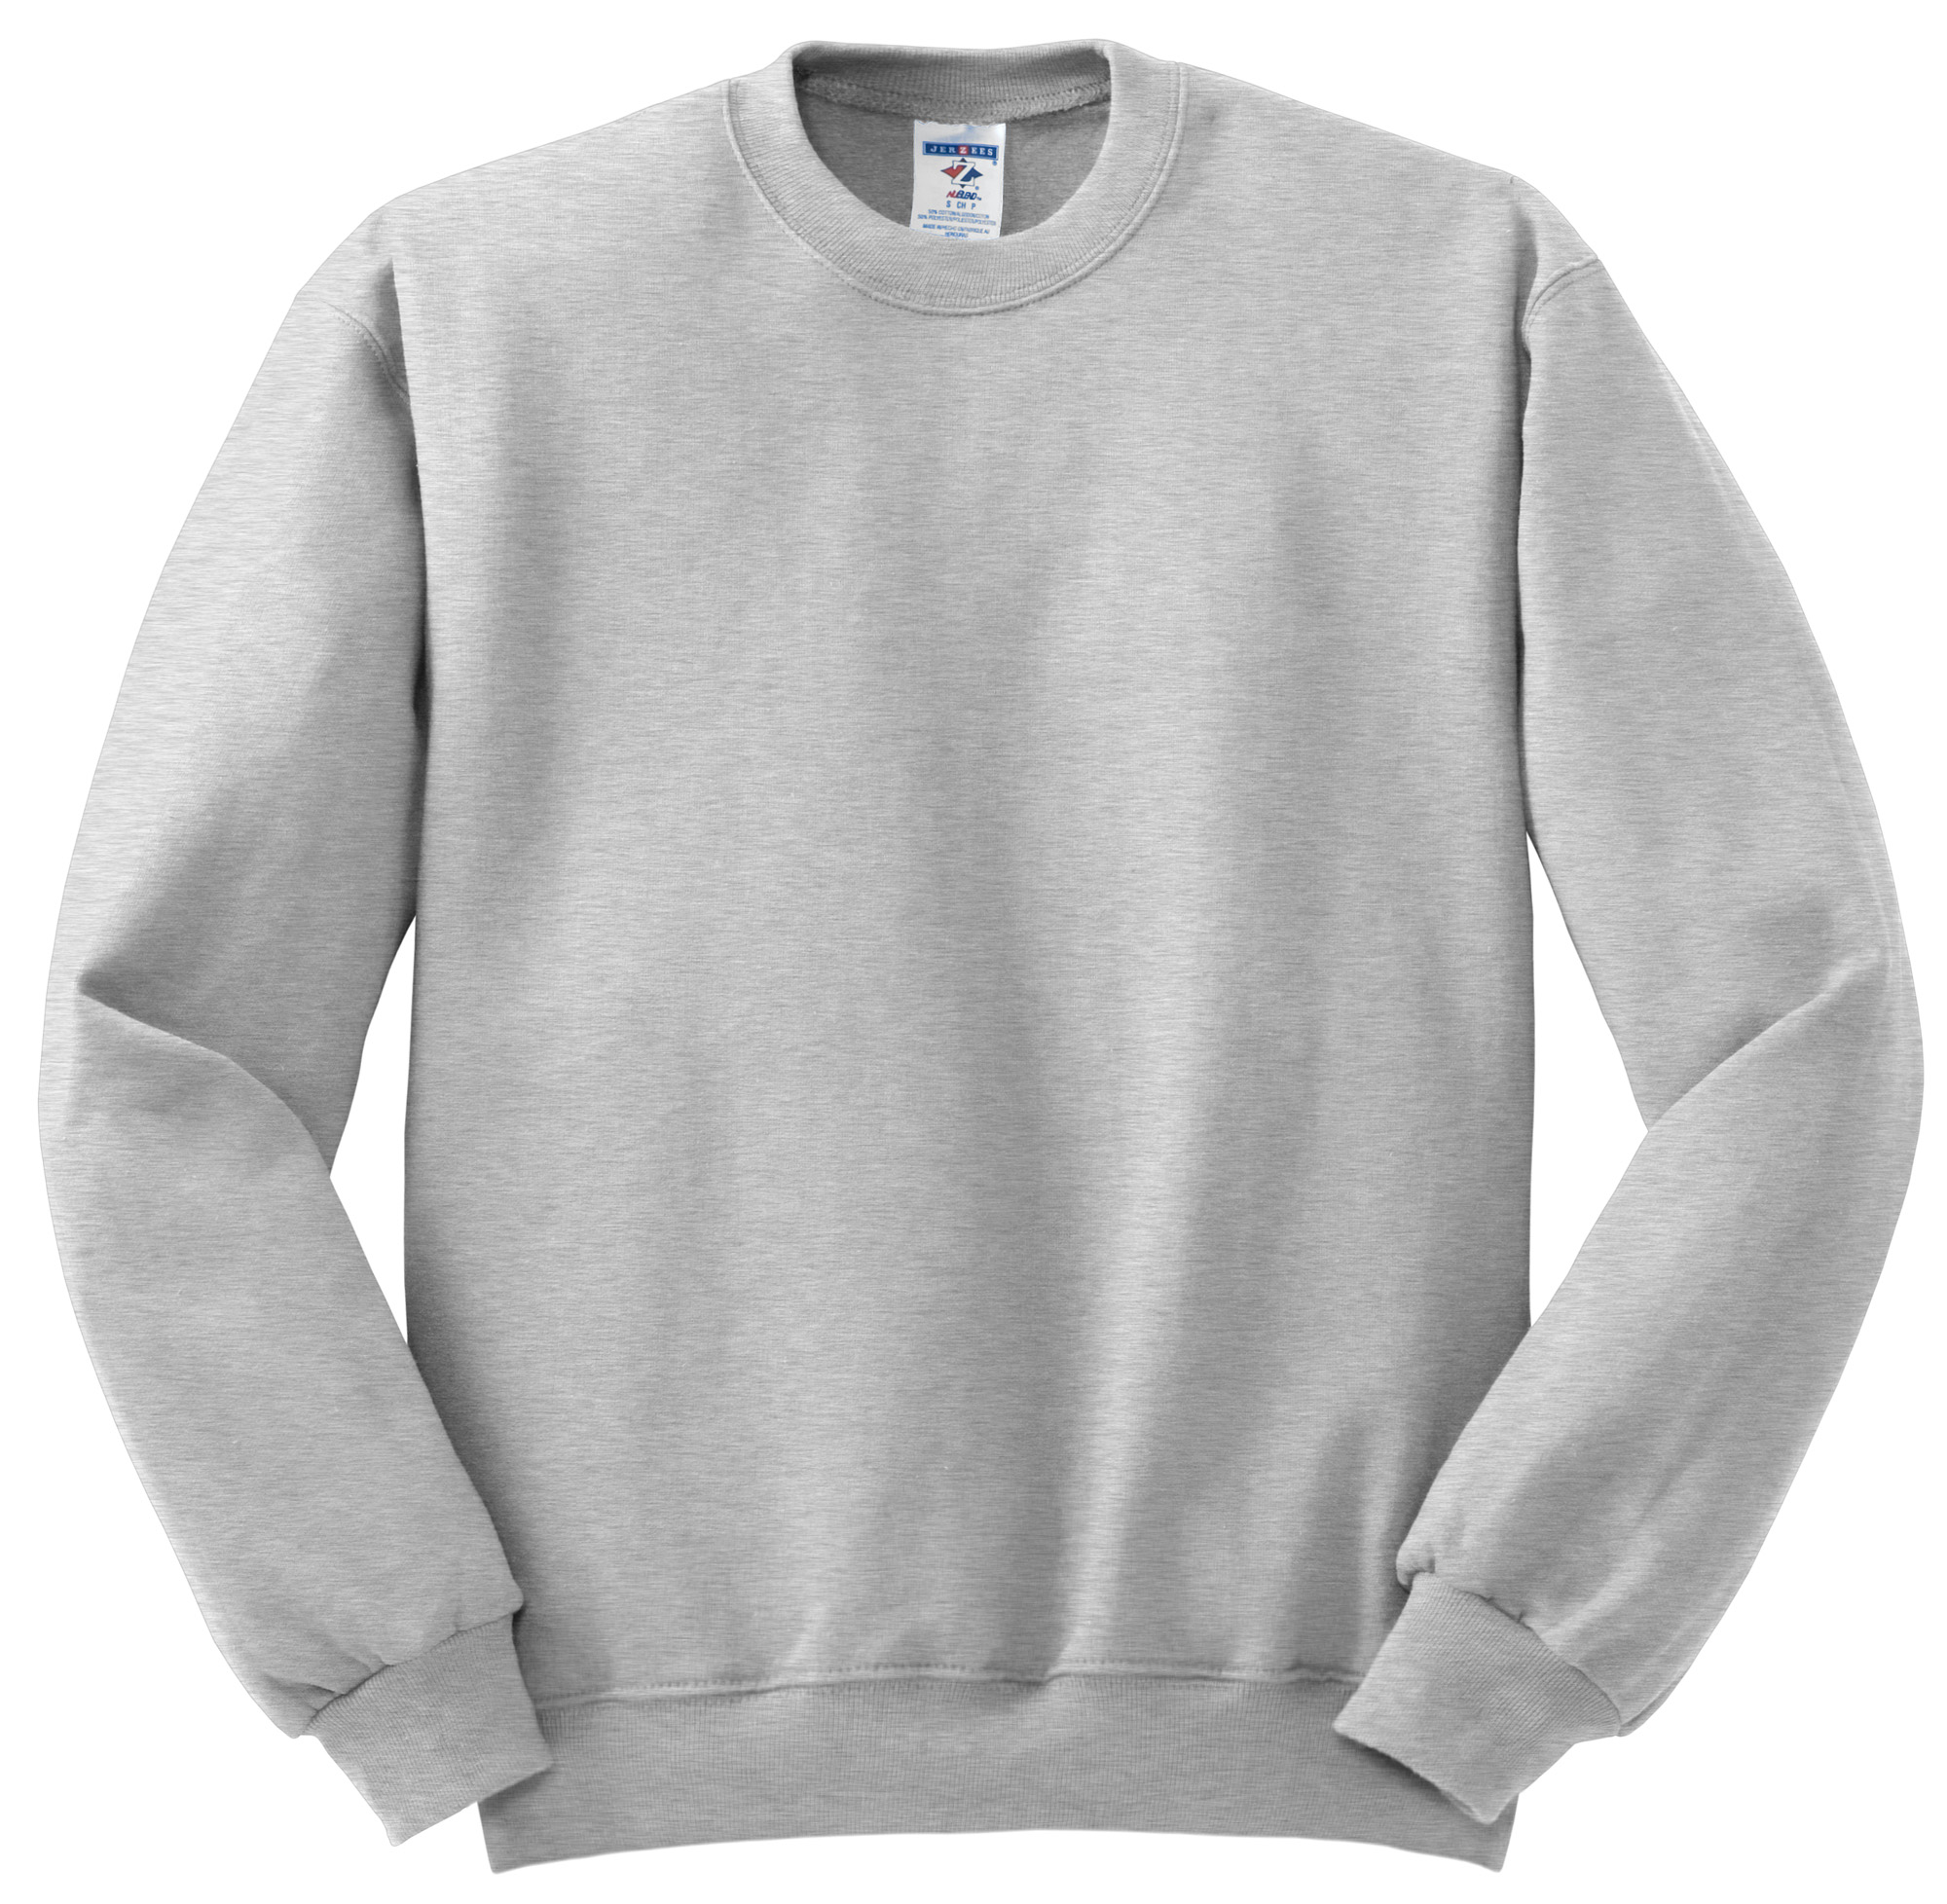 A crew neck (or crew-neck) is a type of shirt or sweater that has a round neckline and no collar, often worn with other layers. The T-shirt crew neck was developed in as an undergarment that would absorb sweat and prevent shoulder pads of American football players from causing chafing.